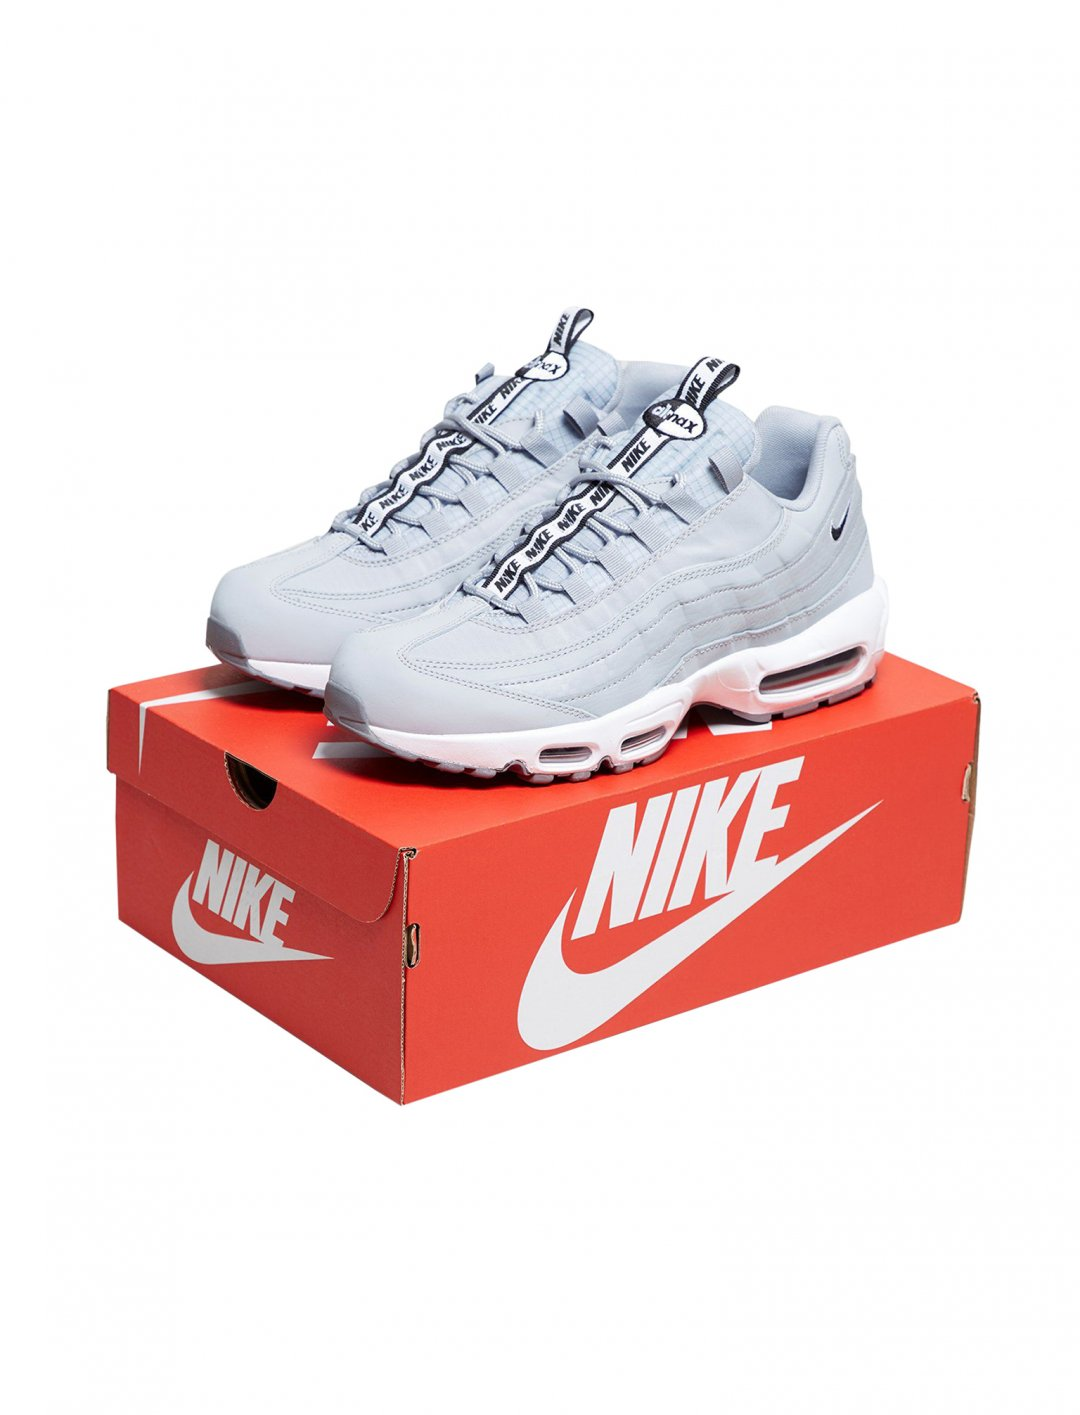 "Nike Air Max 95 Taped {""id"":12,""product_section_id"":1,""name"":""Shoes"",""order"":12} Nike"